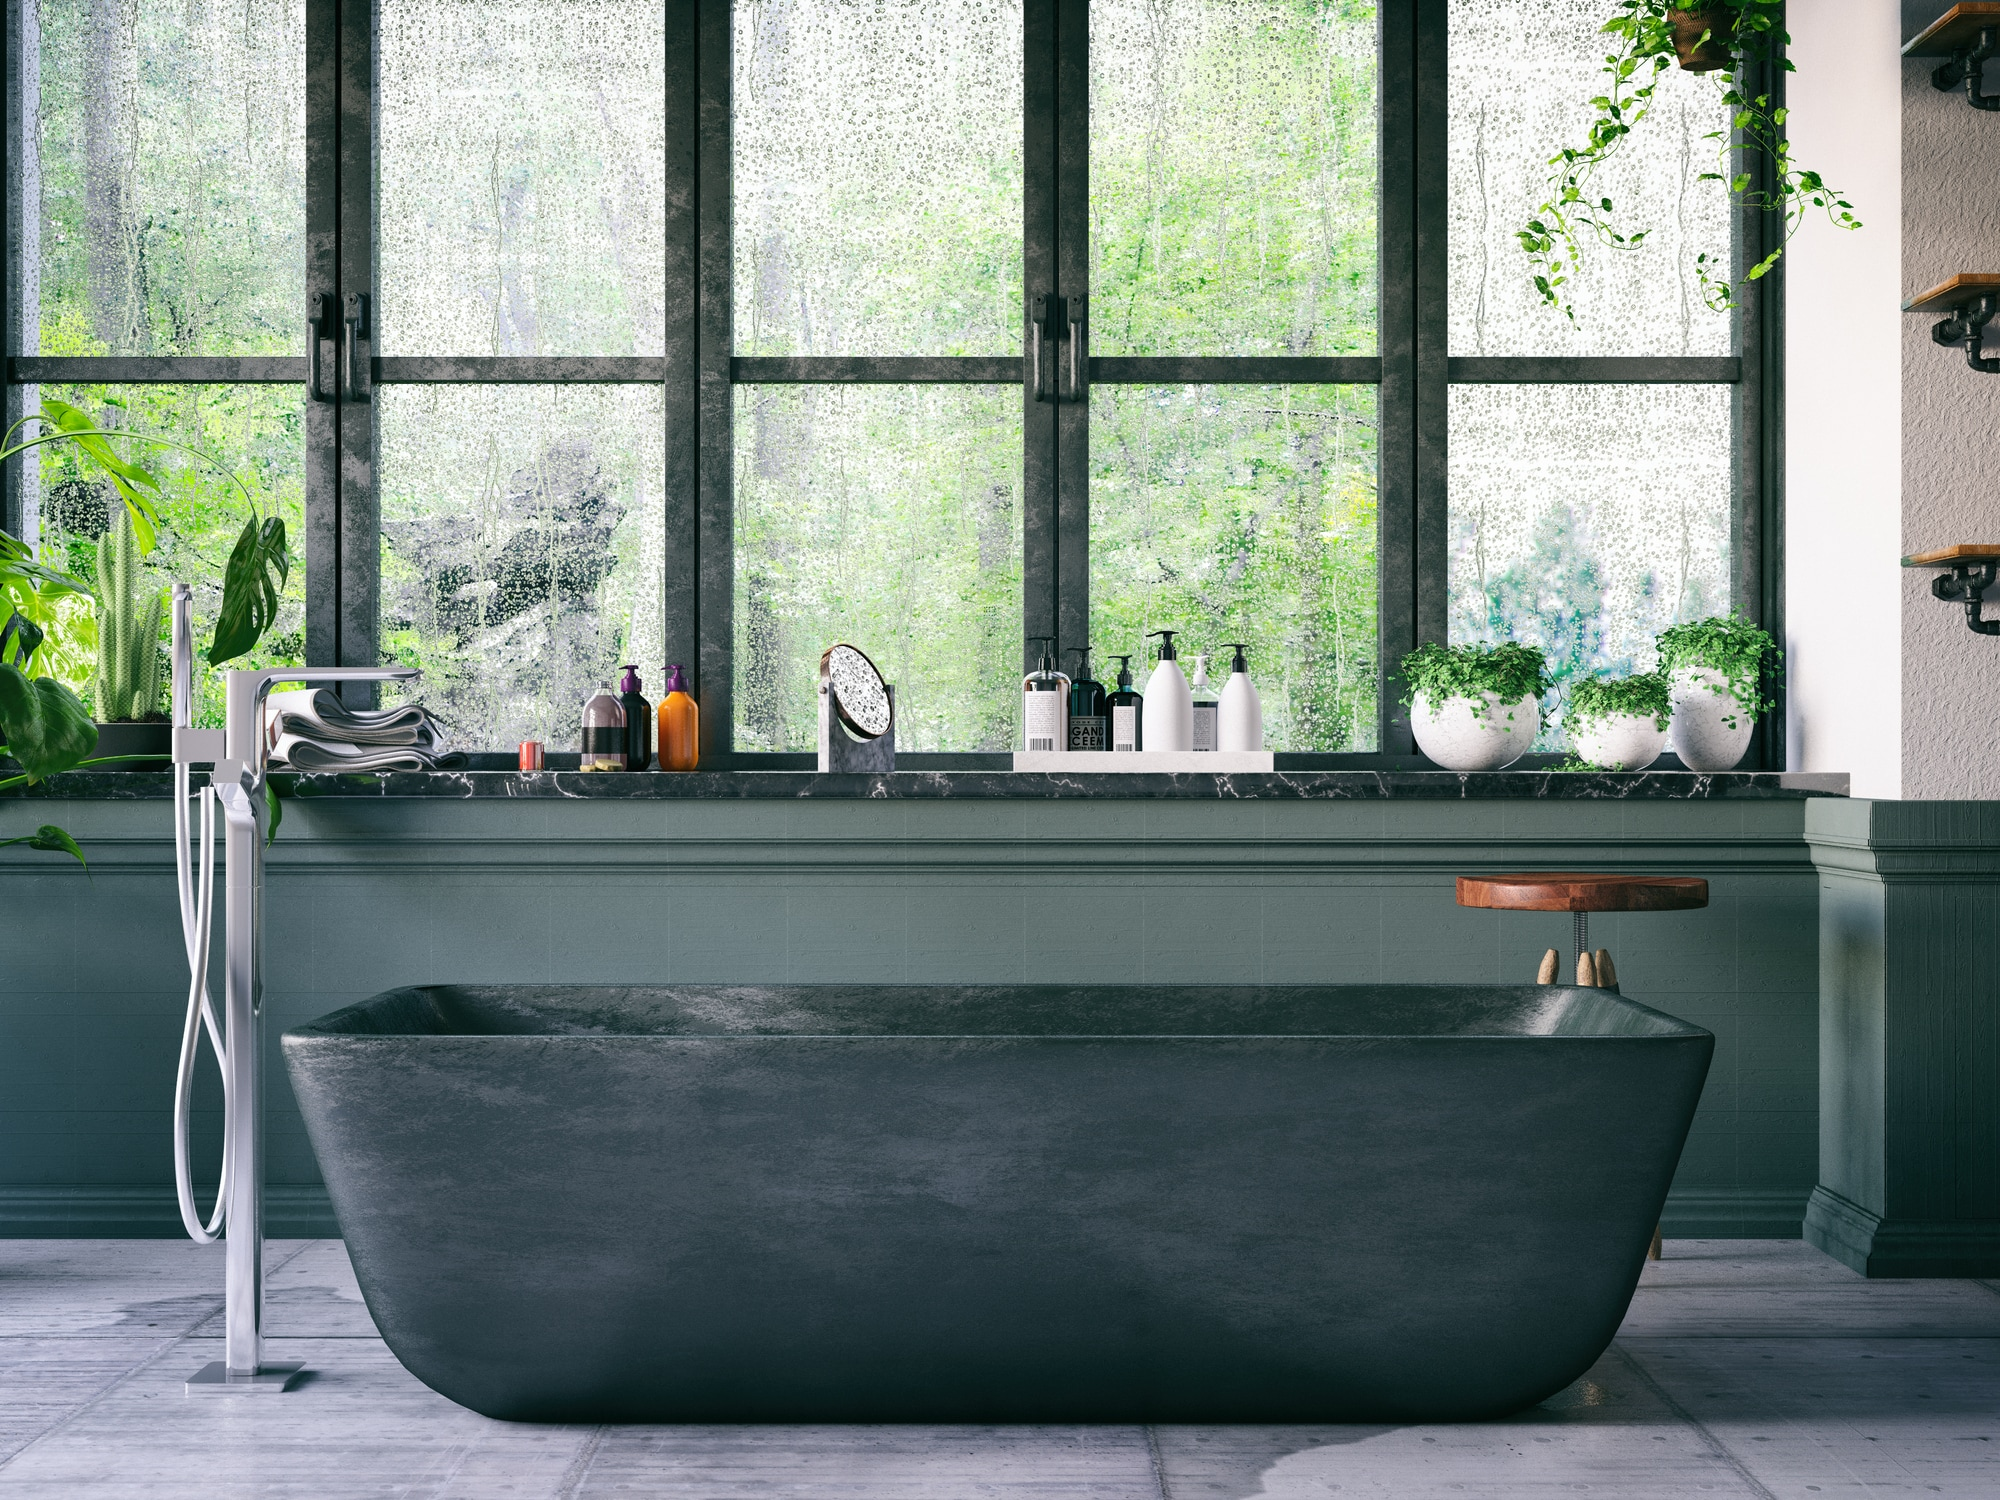 Bathroom Filled with Plants